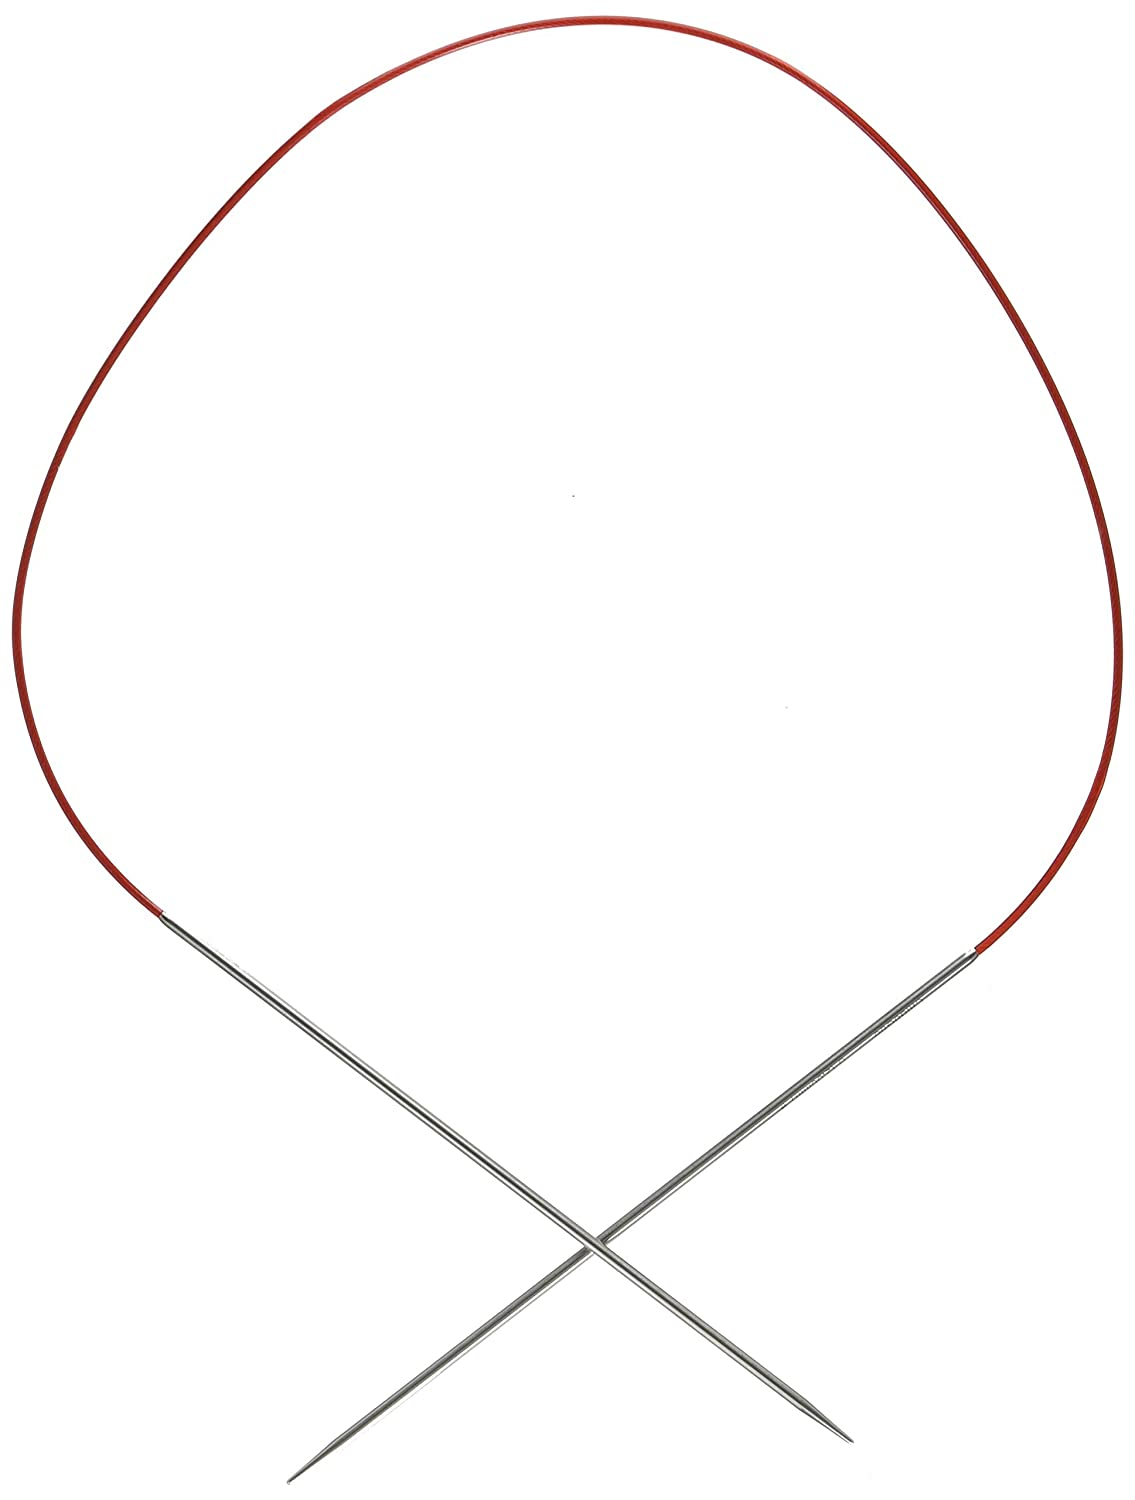 ChiaoGoo Red Lace Circular 24-inch ( 60cm ) Stainless Steel Knitting Needle, Size US 6 ( 4mm ) 7024-6 Westing Bridge LLC. 6285864